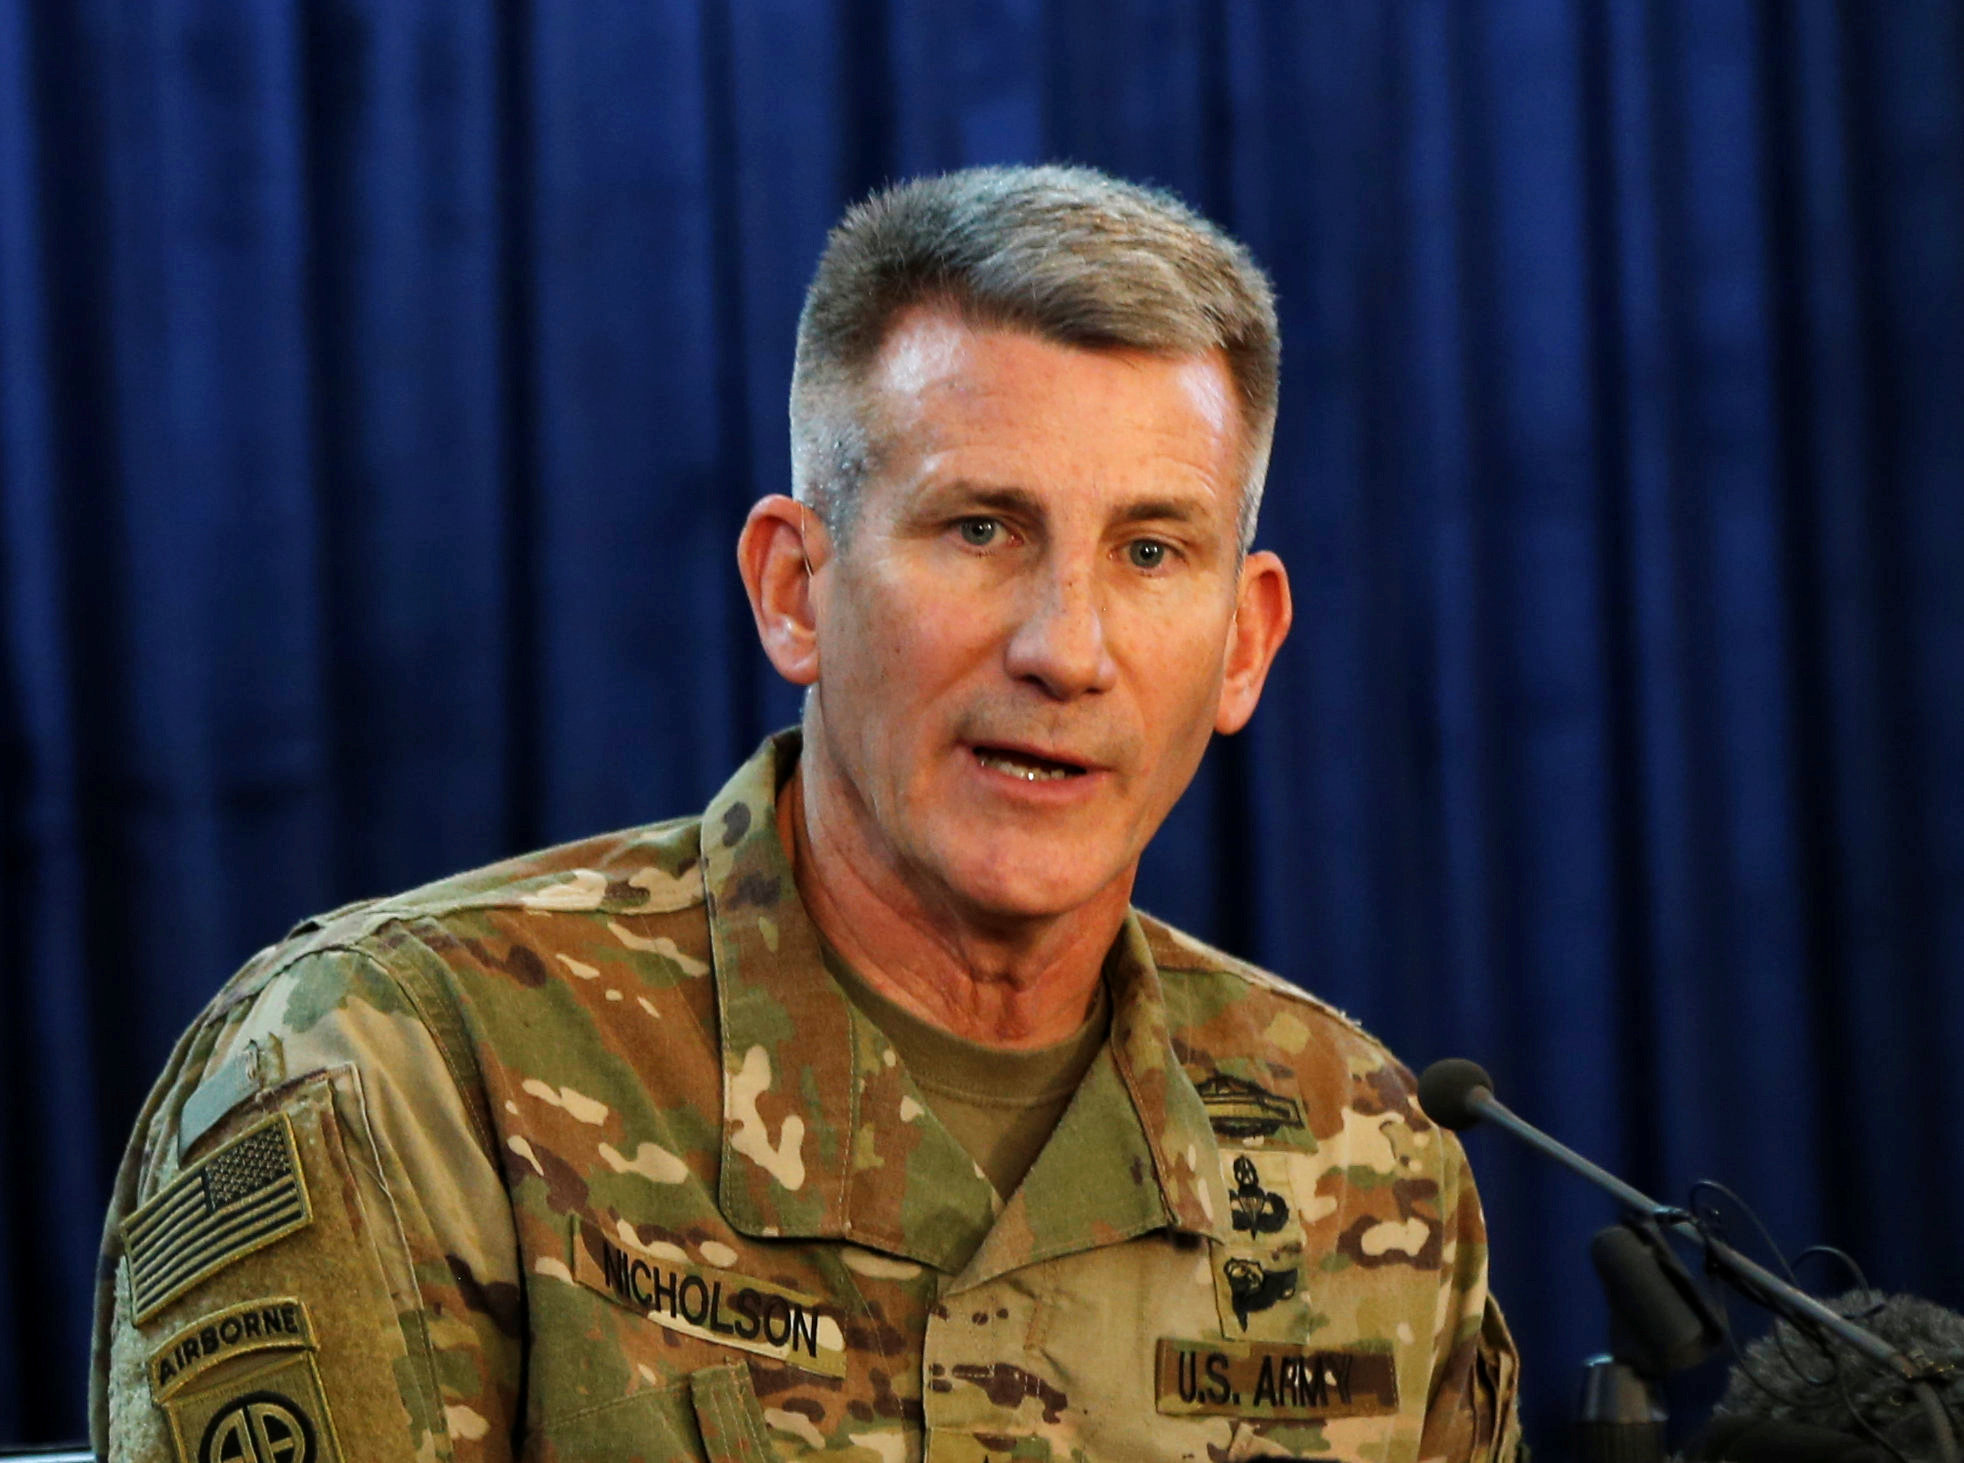 U.S. Army General John Nicholson, Commander of Resolute Support forces and U.S. forces in Afghanistan during a news conference in Kabul, Afghanistan on April 14, 2017. (REUTERS/Omar Sobhani)